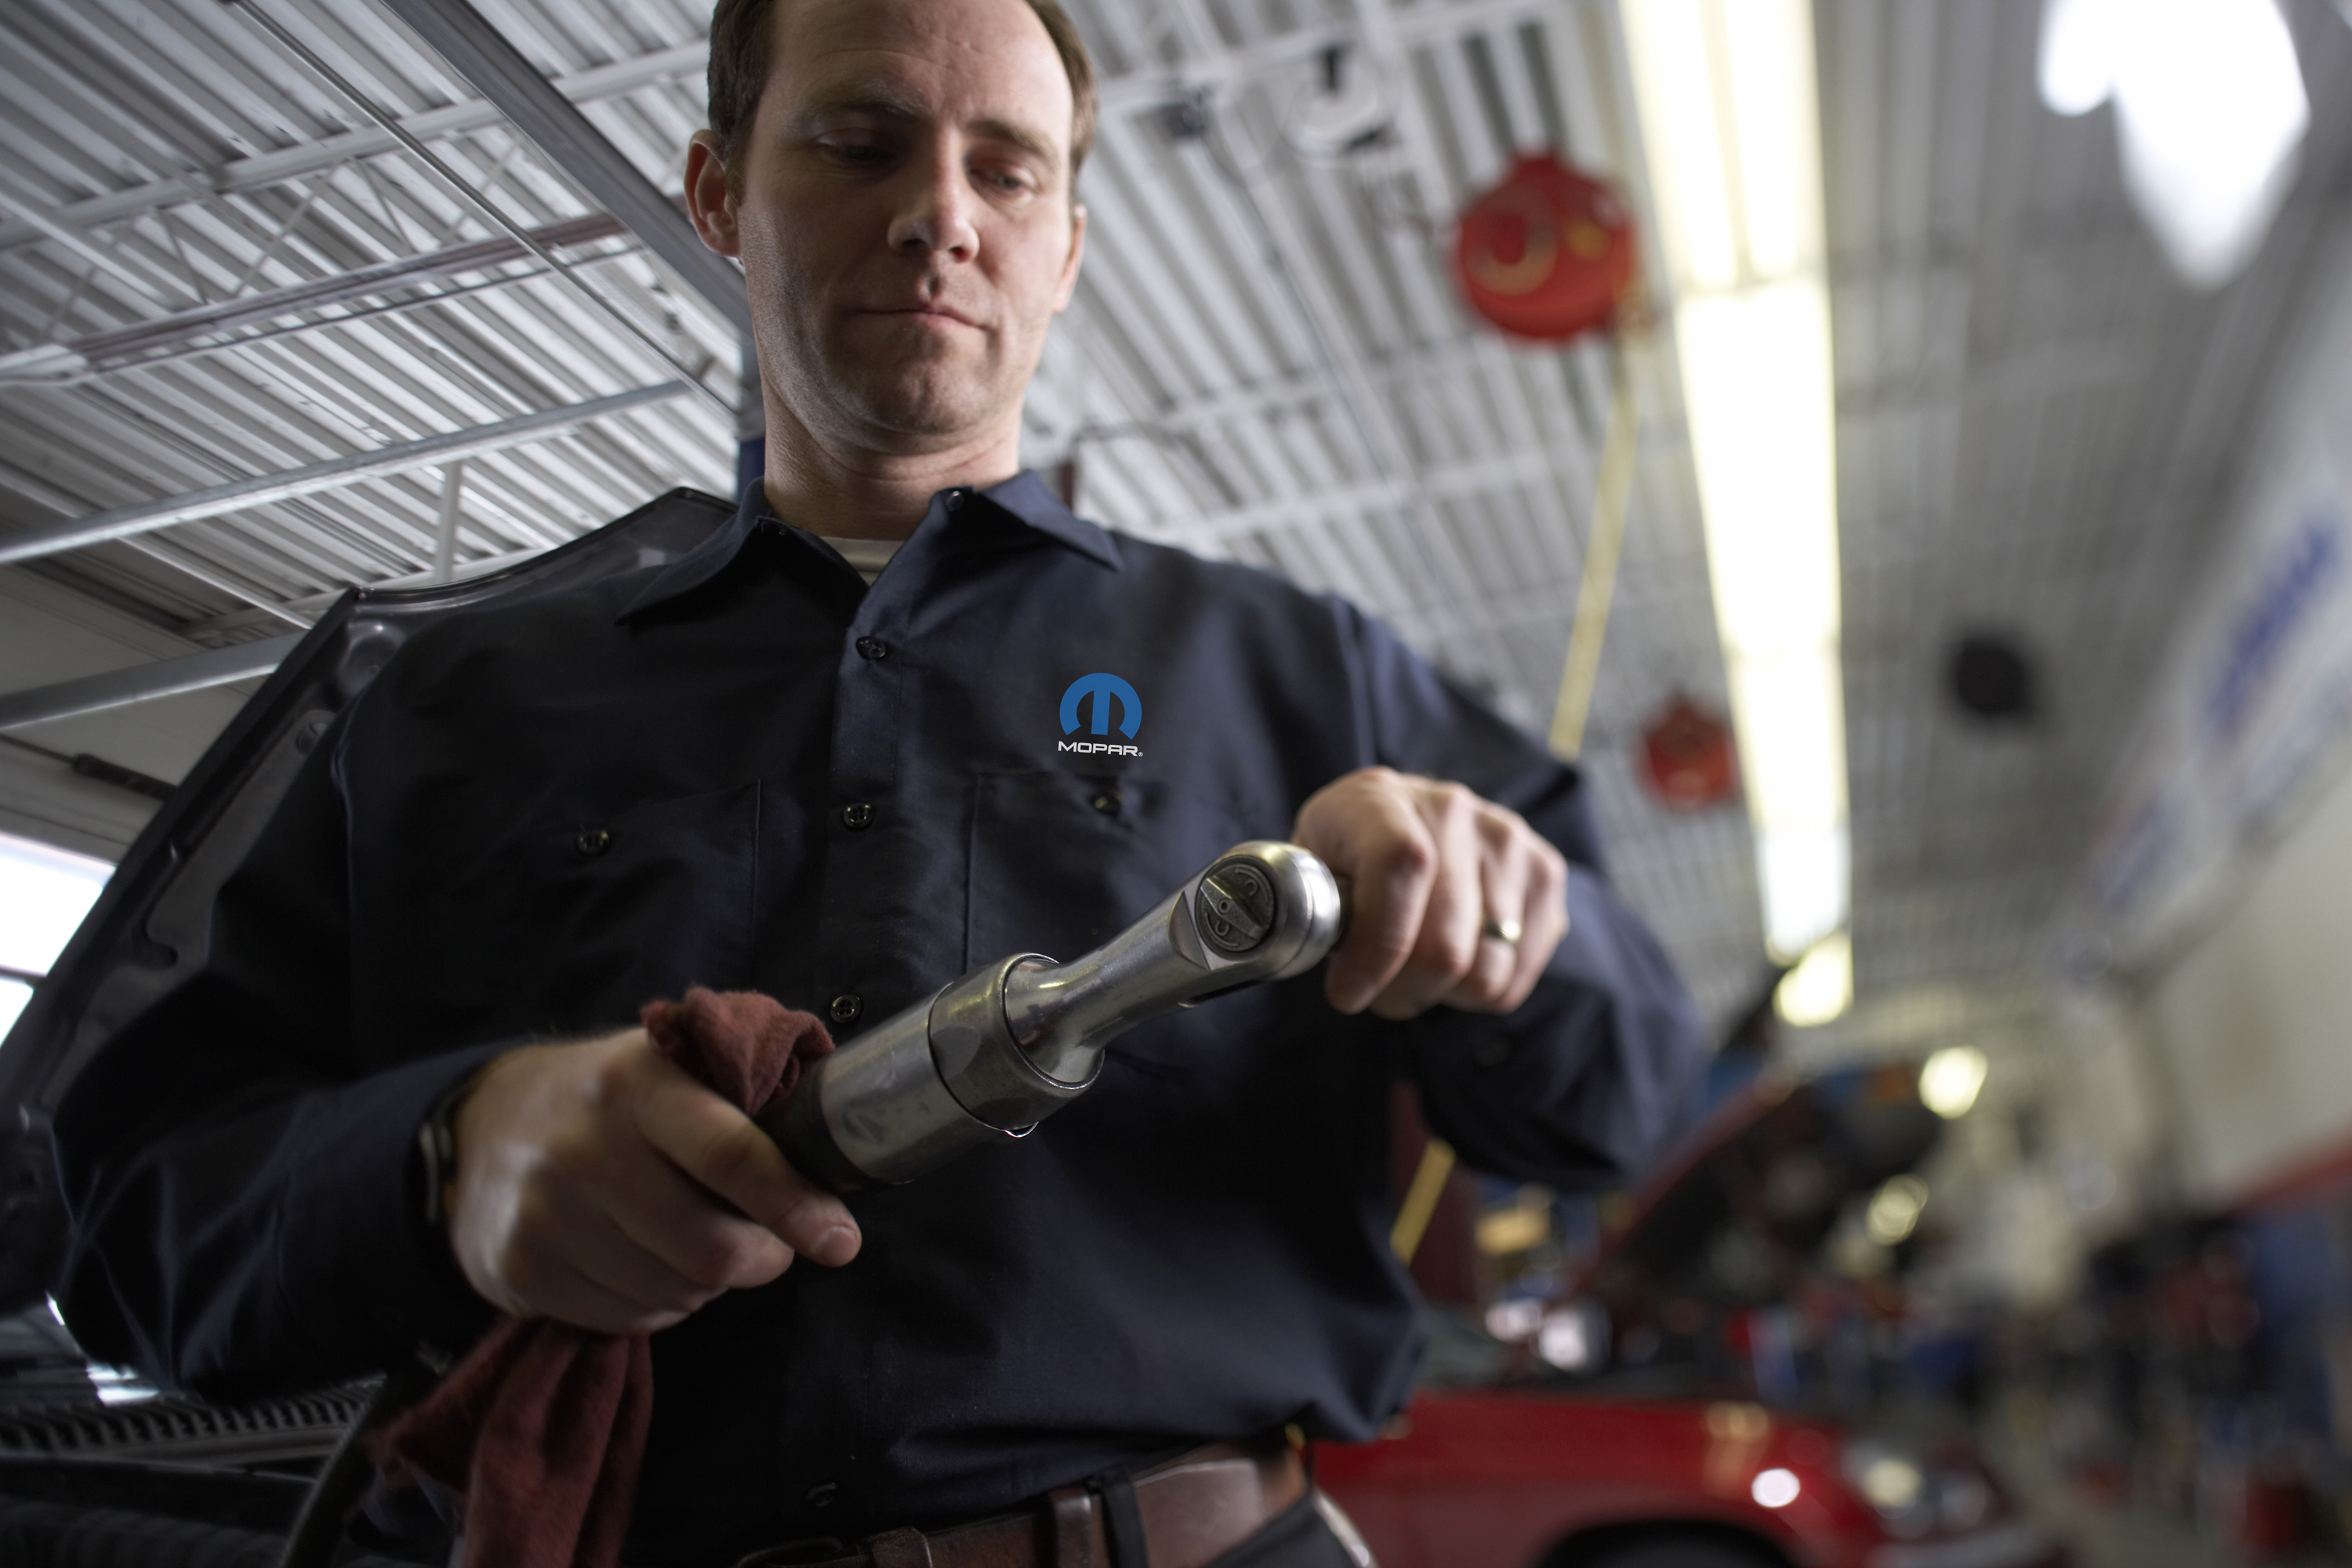 Mopar is Chrysler Group's service, parts and customer-care brand